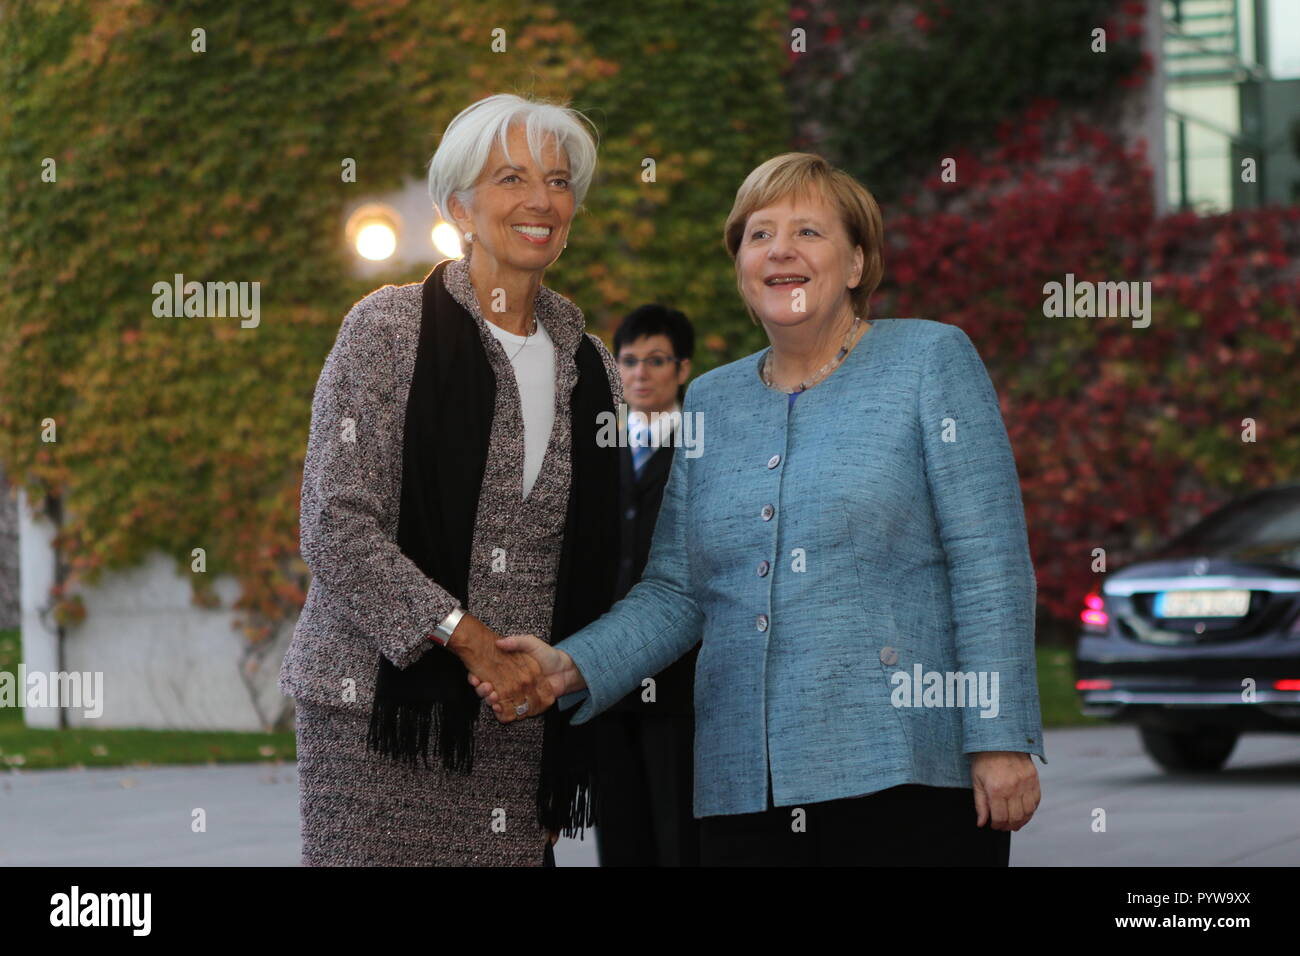 Berlin, Germany. 30th October, 2018. Chancellor Angela Merkel and Christine Lagarde, IMF  at the reception in the courtyard of the Federal Chancellery.The meeting will take place within the framework of Compact with Africa. Credit: SAO Struck/Alamy Live News - Stock Image